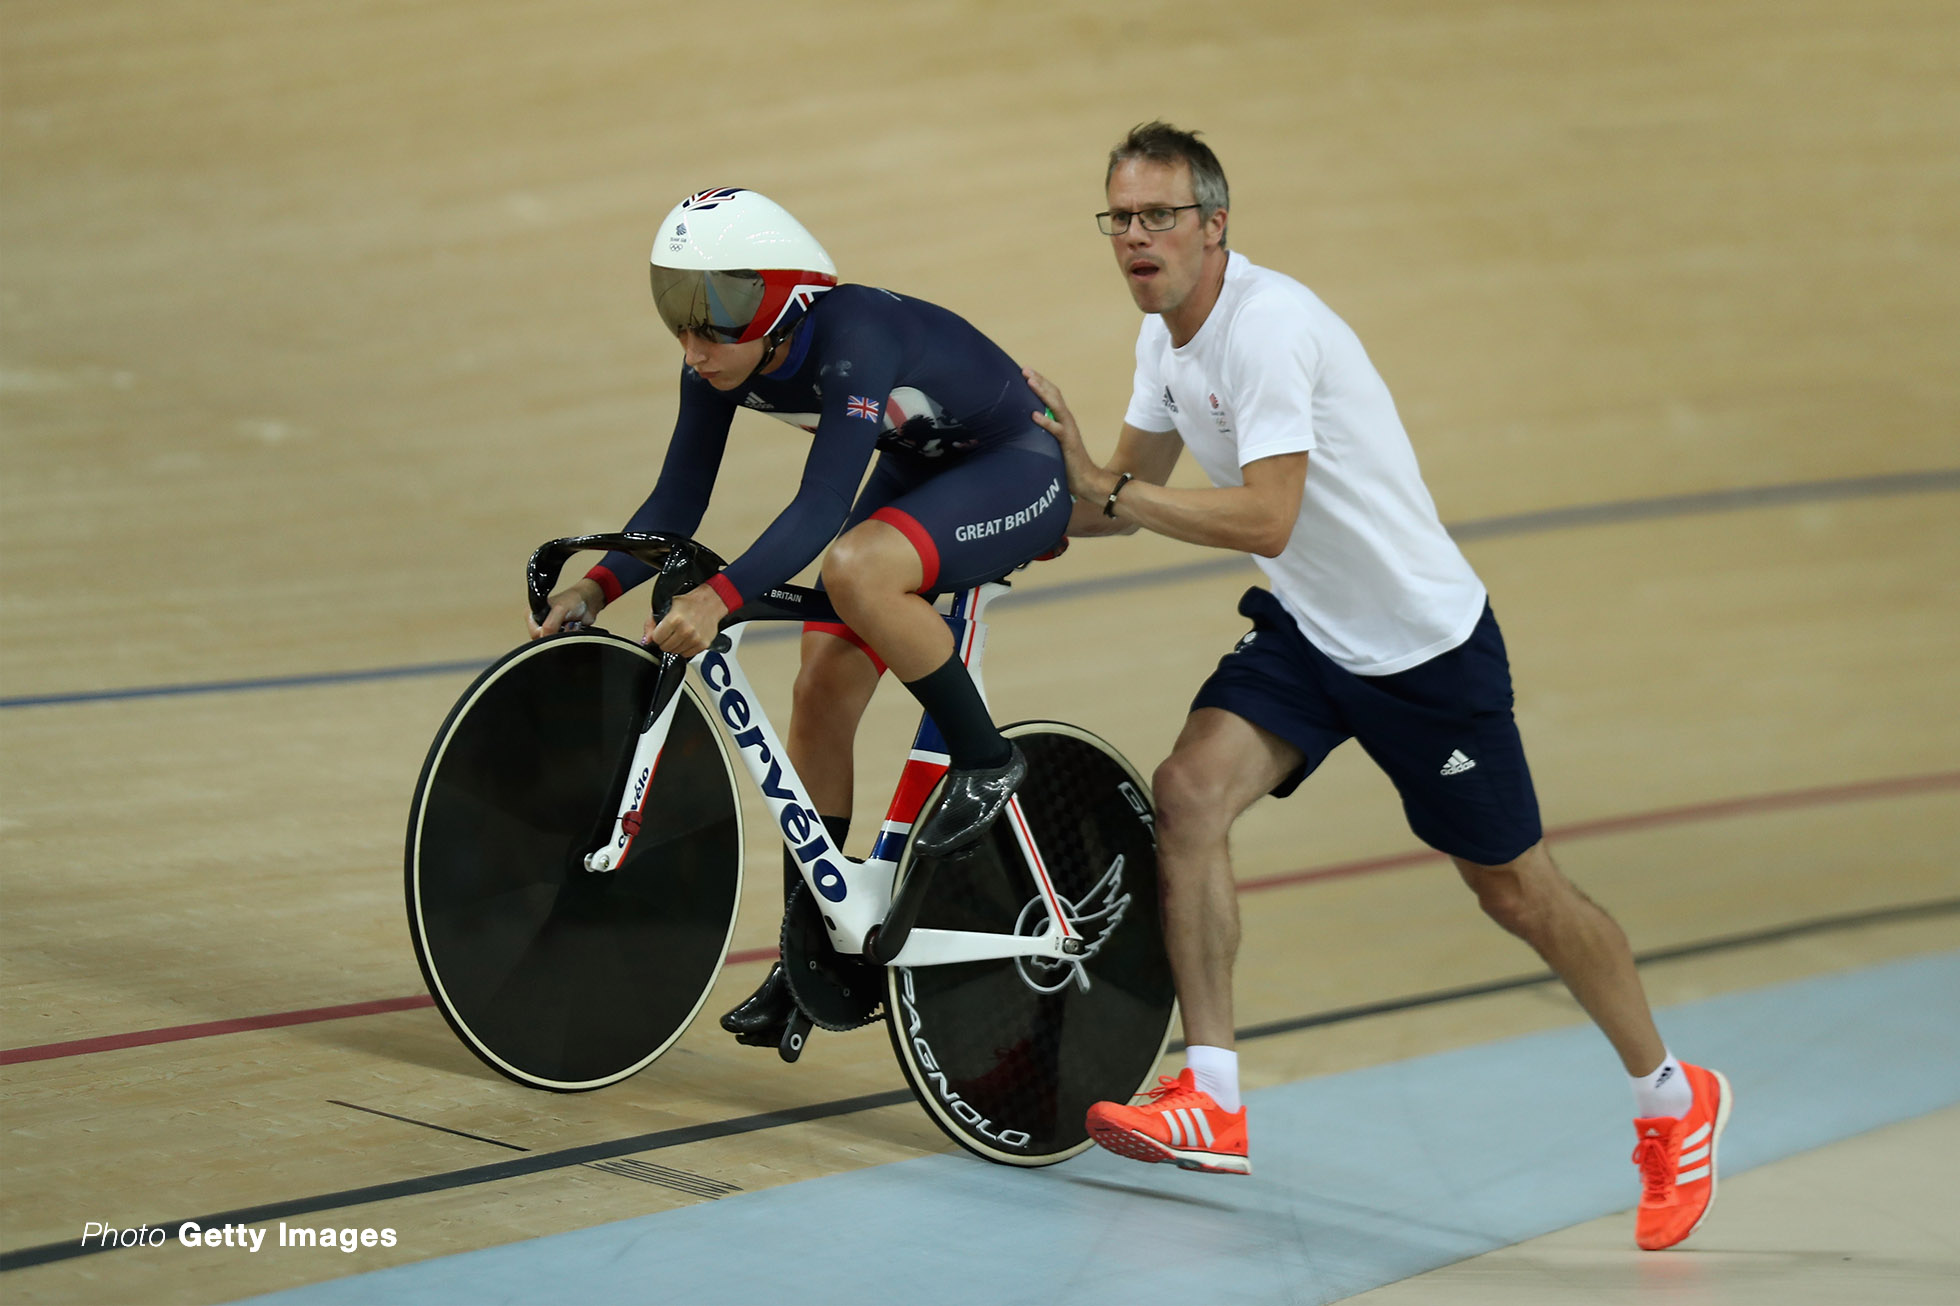 RIO DE JANEIRO, BRAZIL - AUGUST 16: Laura Trott of Great Britain gets a start from coach Paul Manning during the Women's Omnium Flying Lap 5\6 race on Day 11 of the Rio 2016 Olympic Games at the Rio Olympic Velodrome on August 16, 2016 in Rio de Janeiro, Brazil. (Photo by Bryn Lennon/Getty Images)